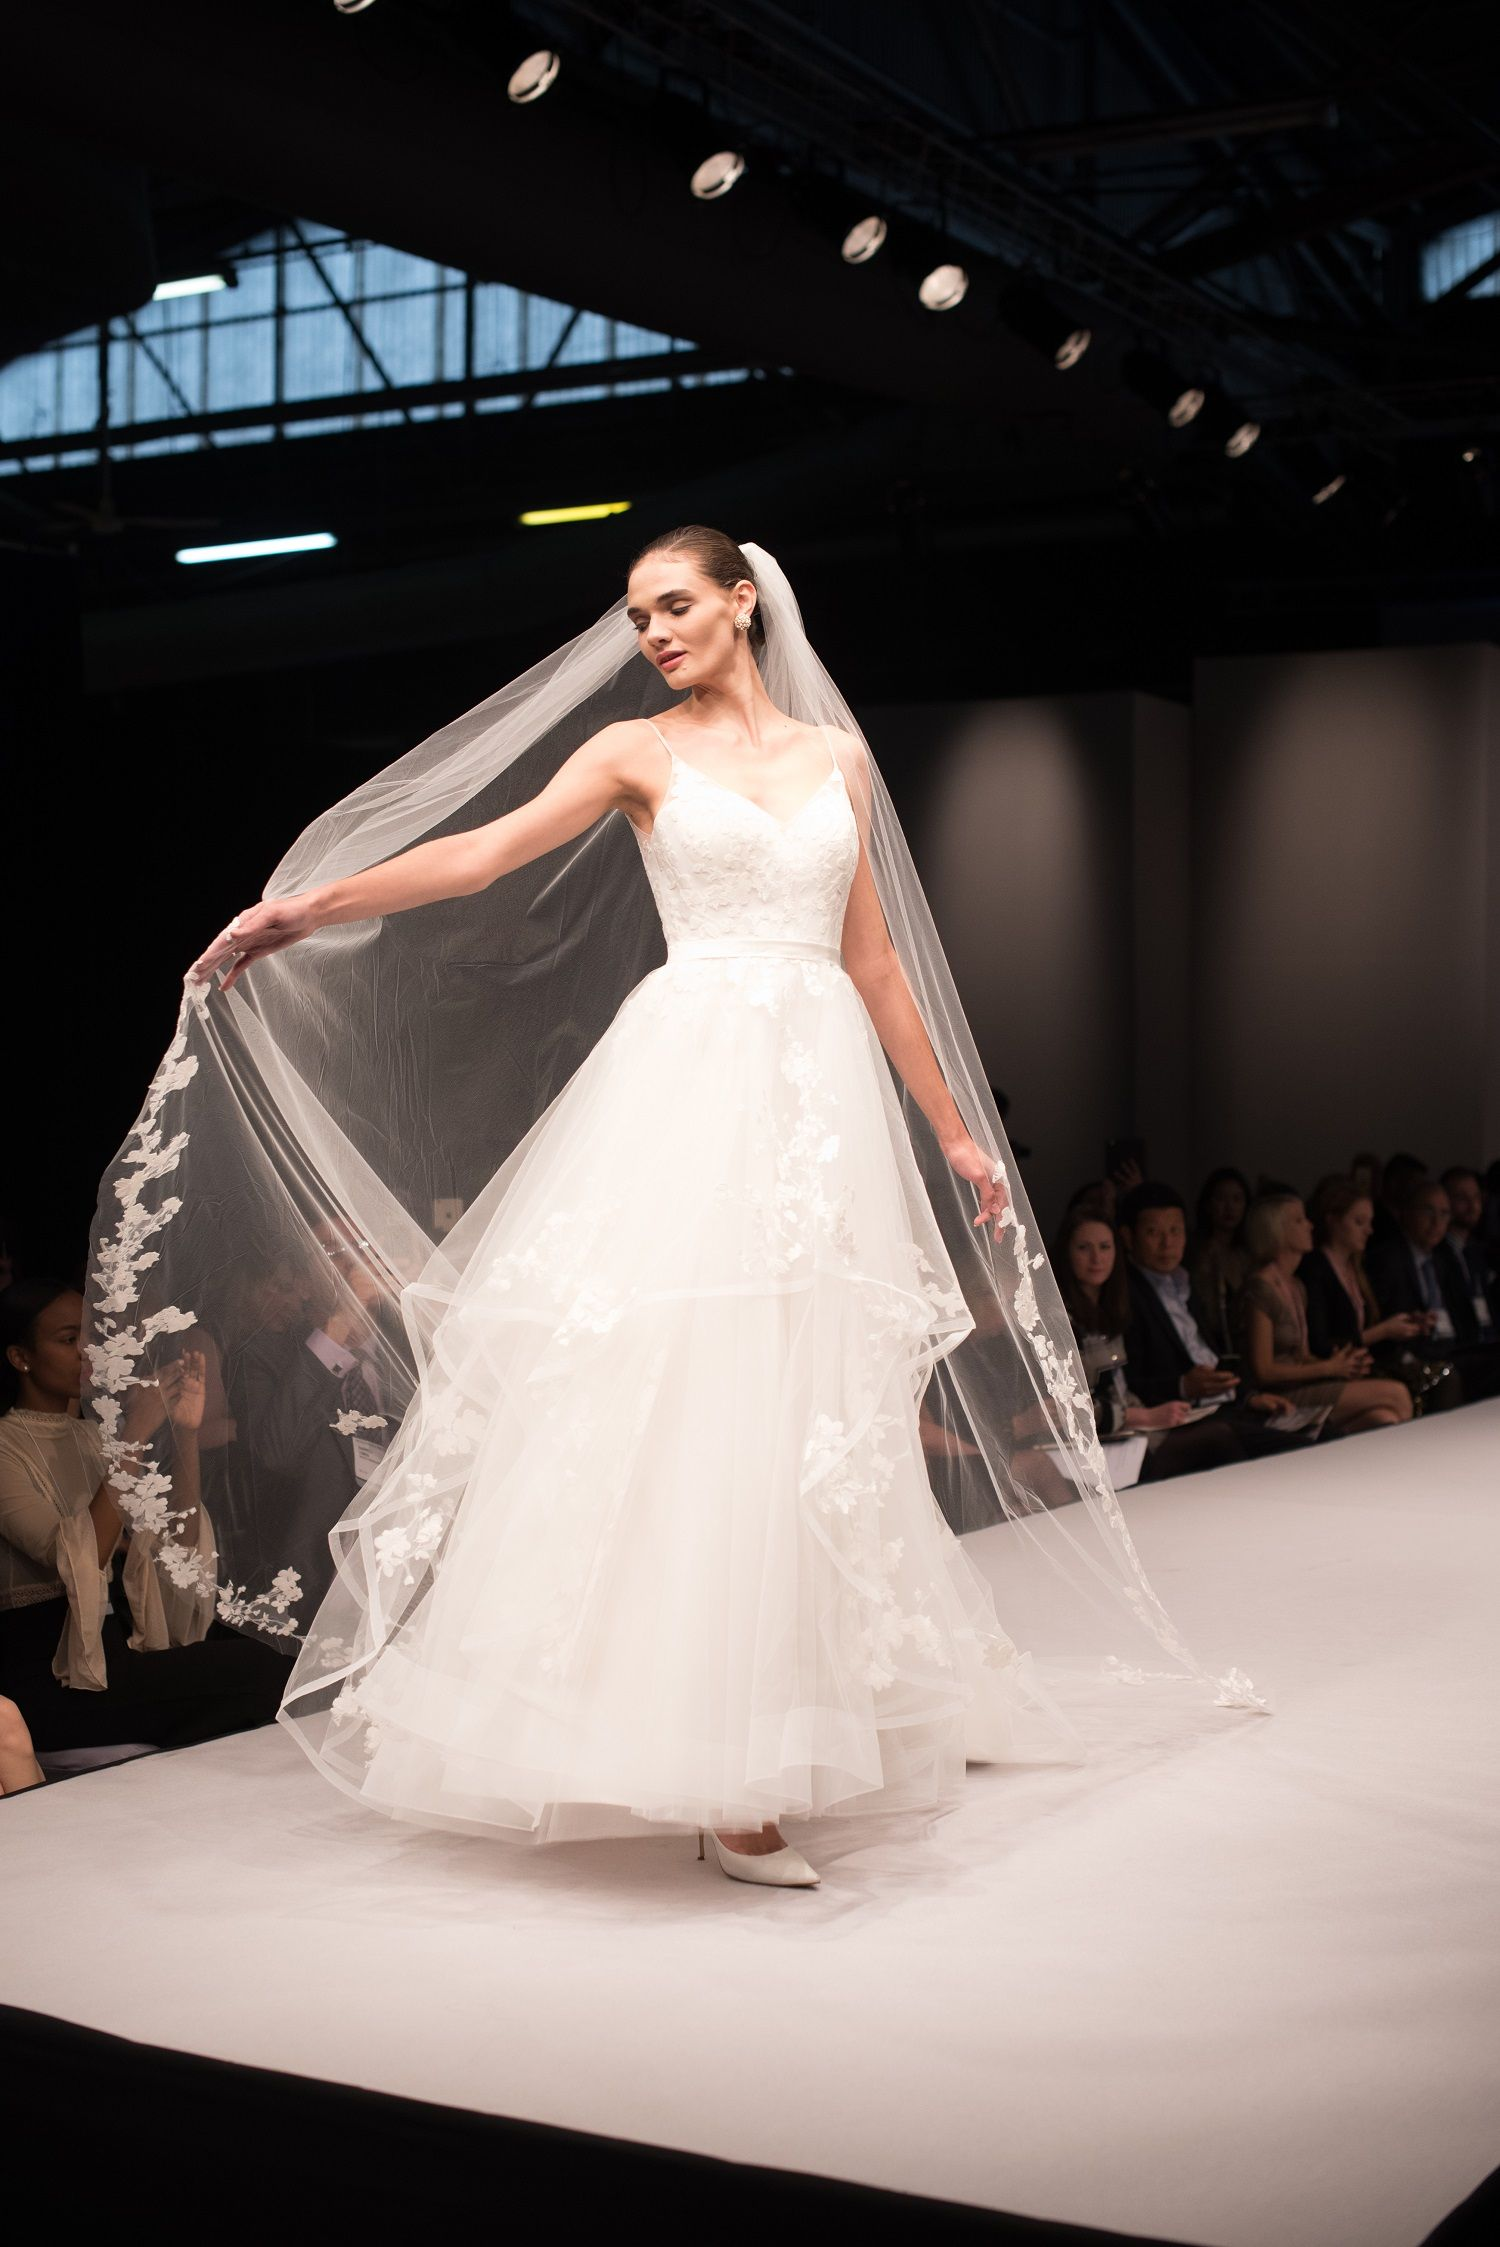 aef4ff1aec1c BL219 Sweet from Beloved by Casablanca Bridal photographed by Vero Suh